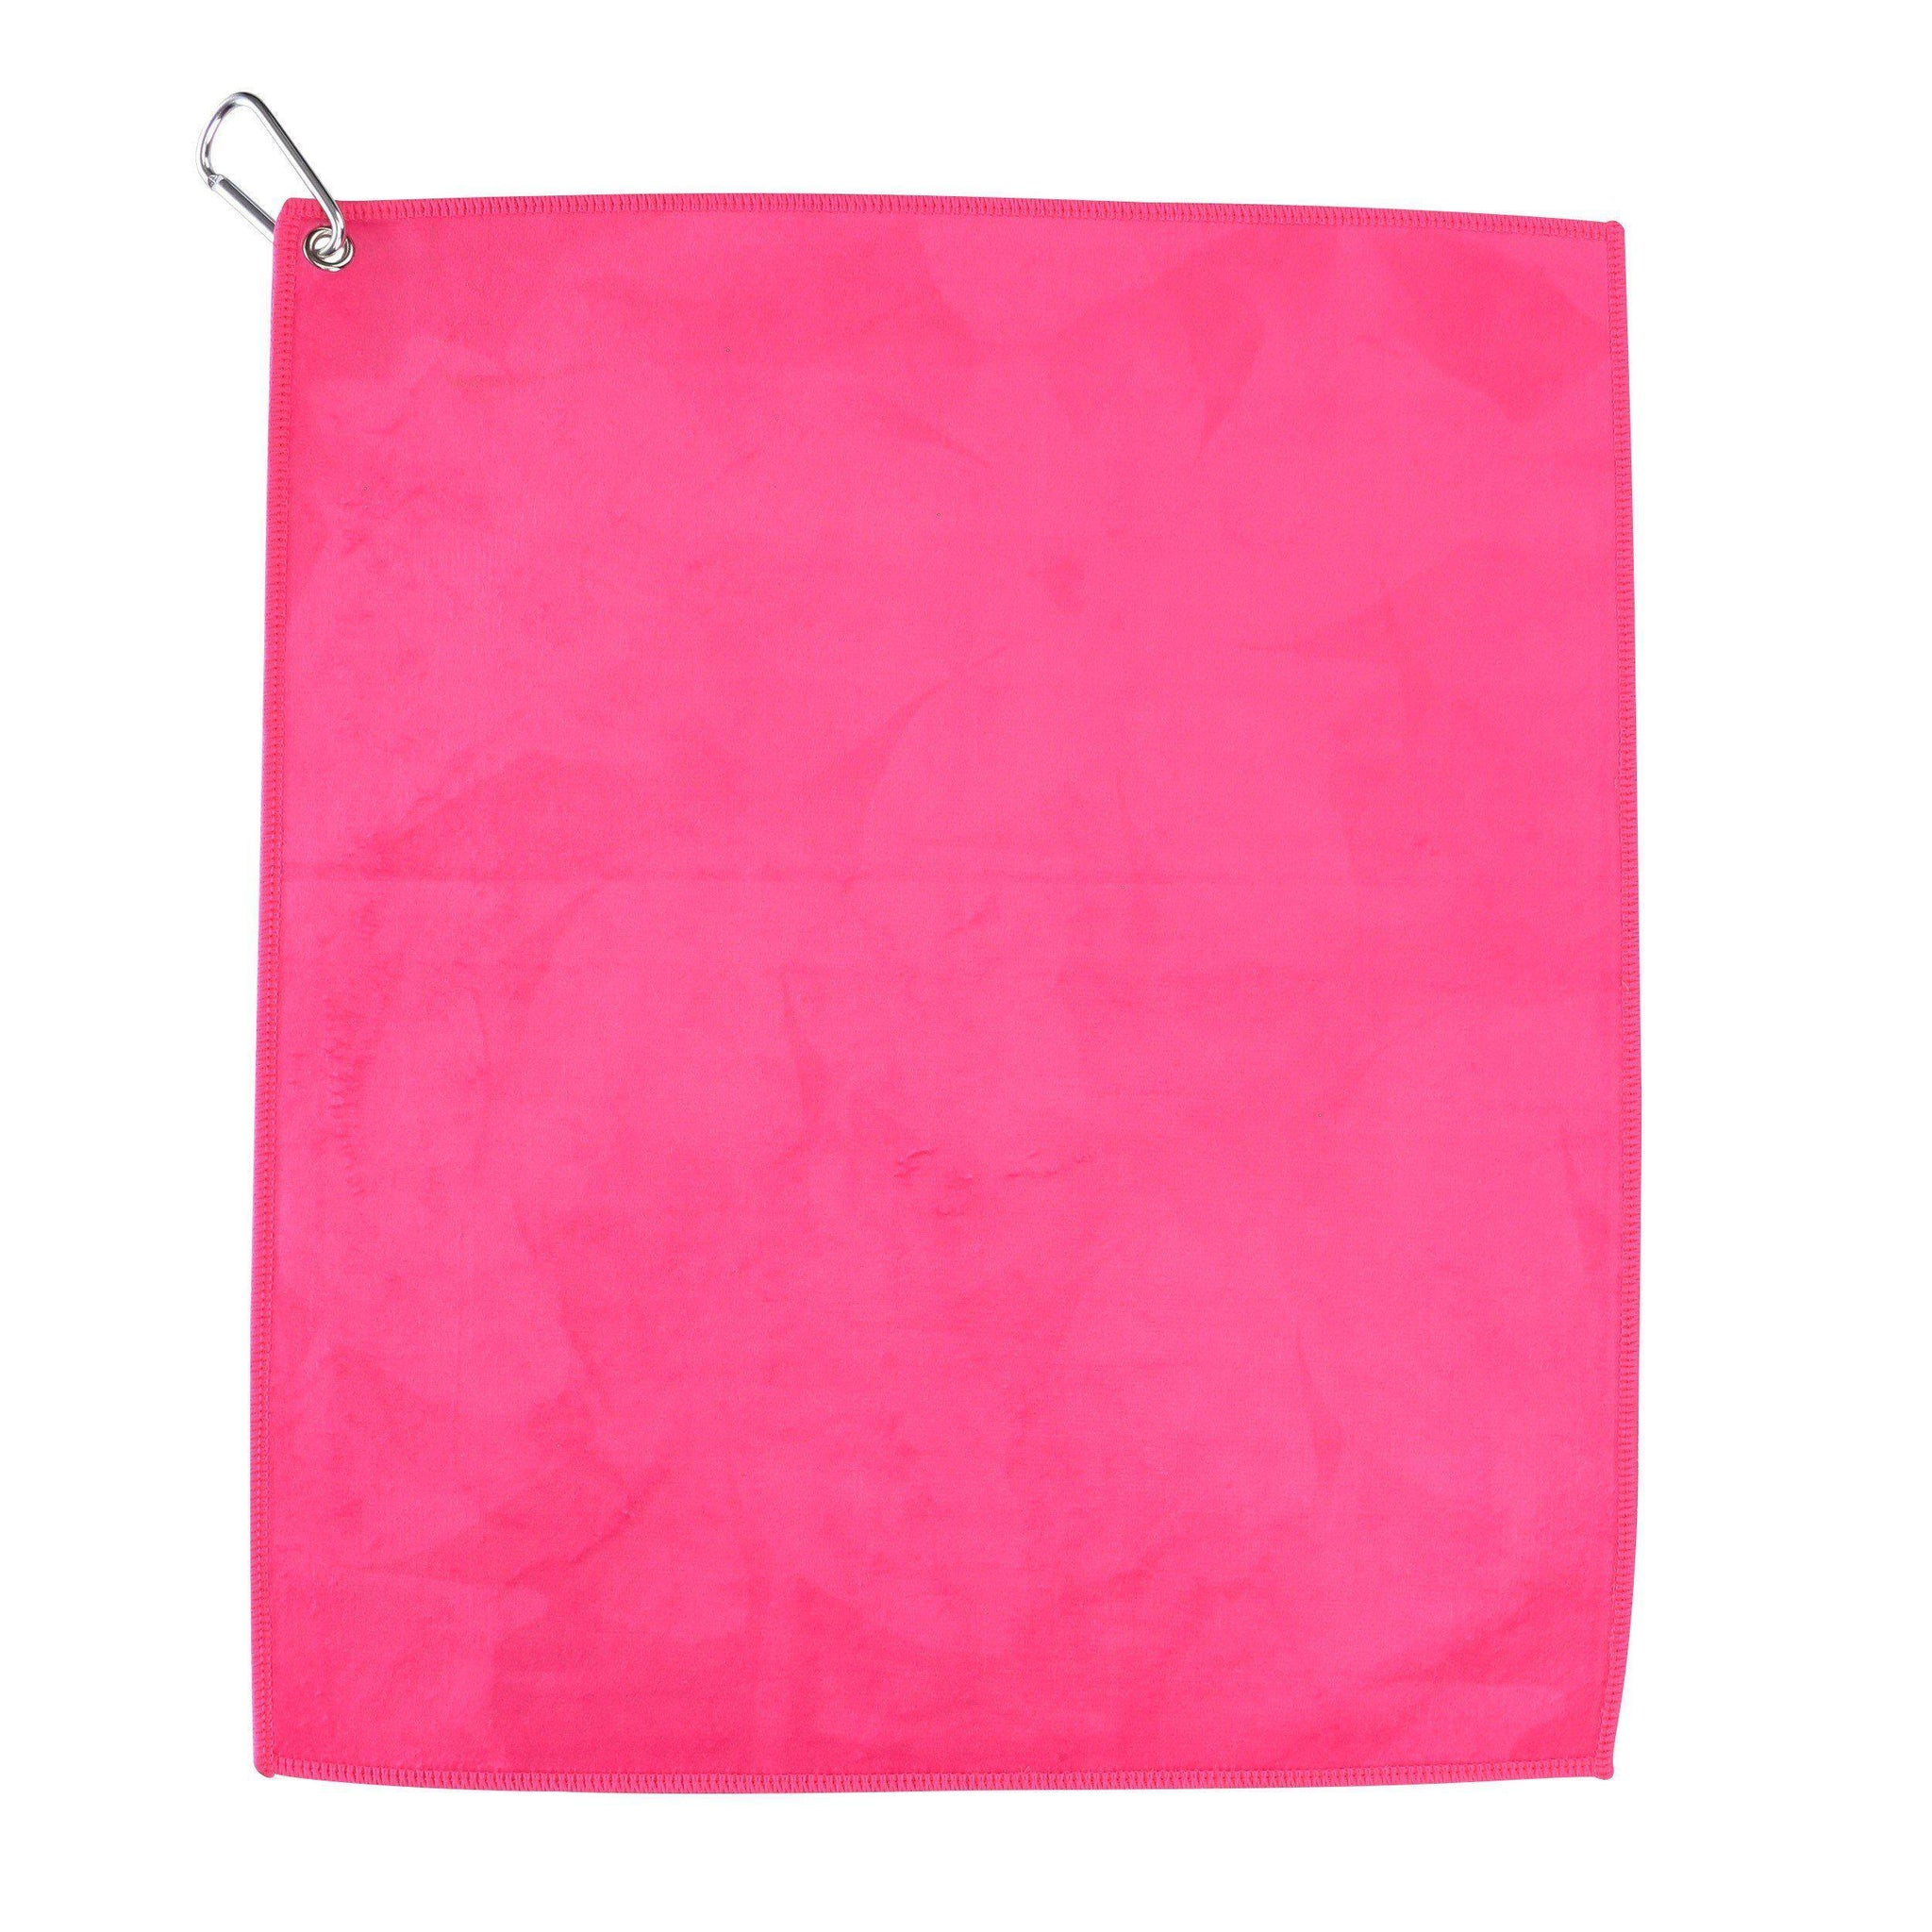 Hot Pink Microfiber Cotton Golf & Tennis Towel-Golf Towel-Millie Rose Designs